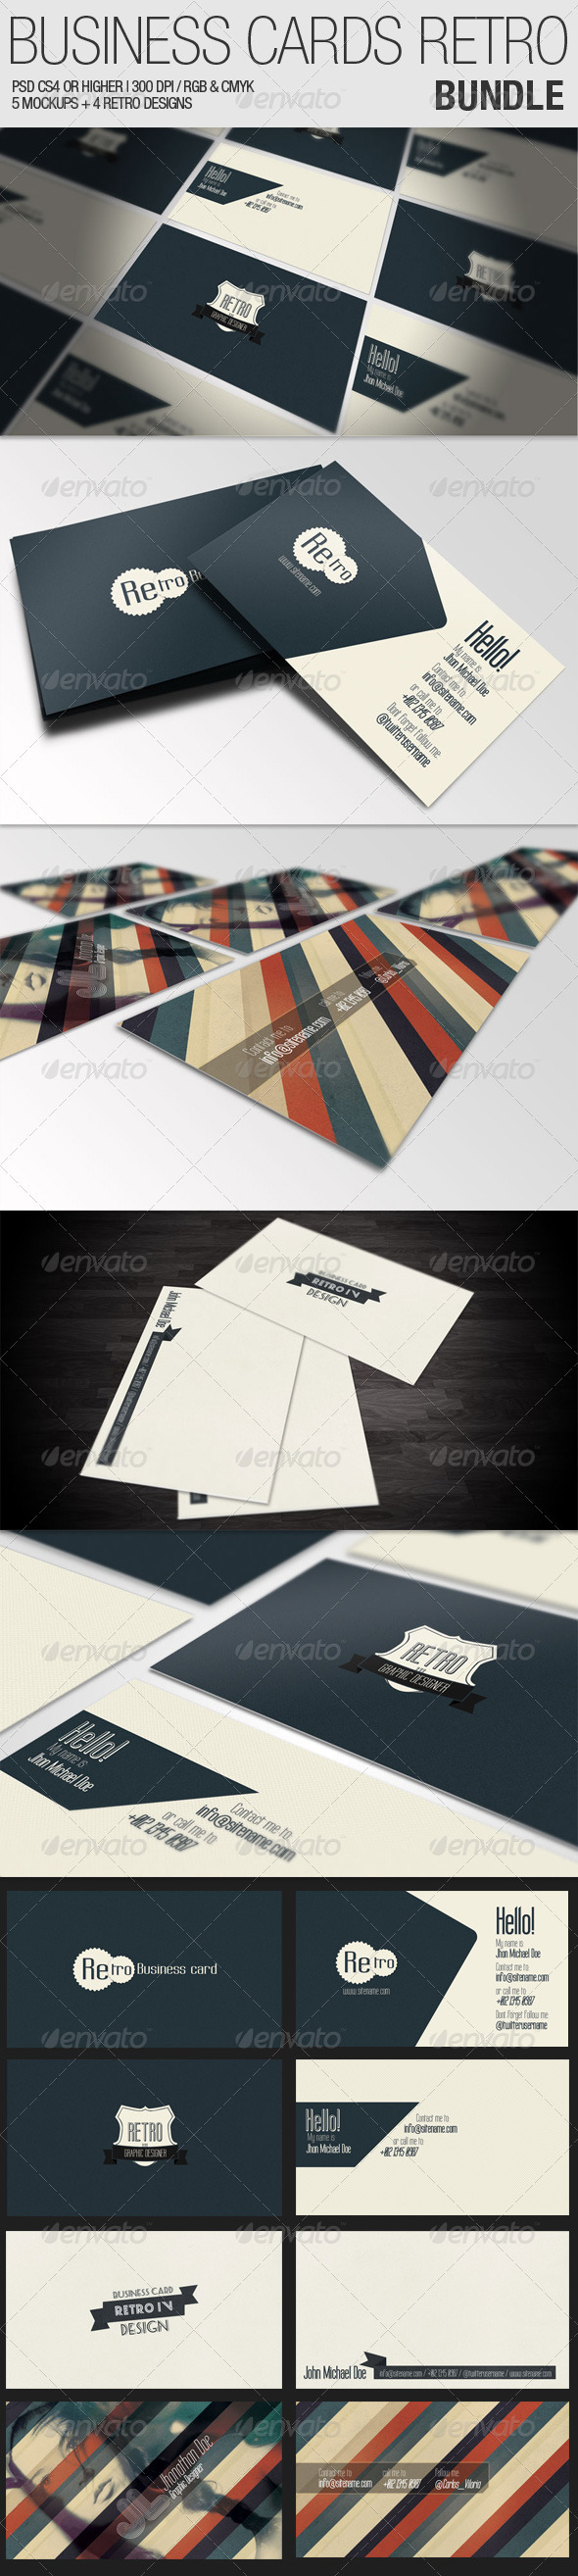 Business Cards Retro - Bundle - Business Cards Print